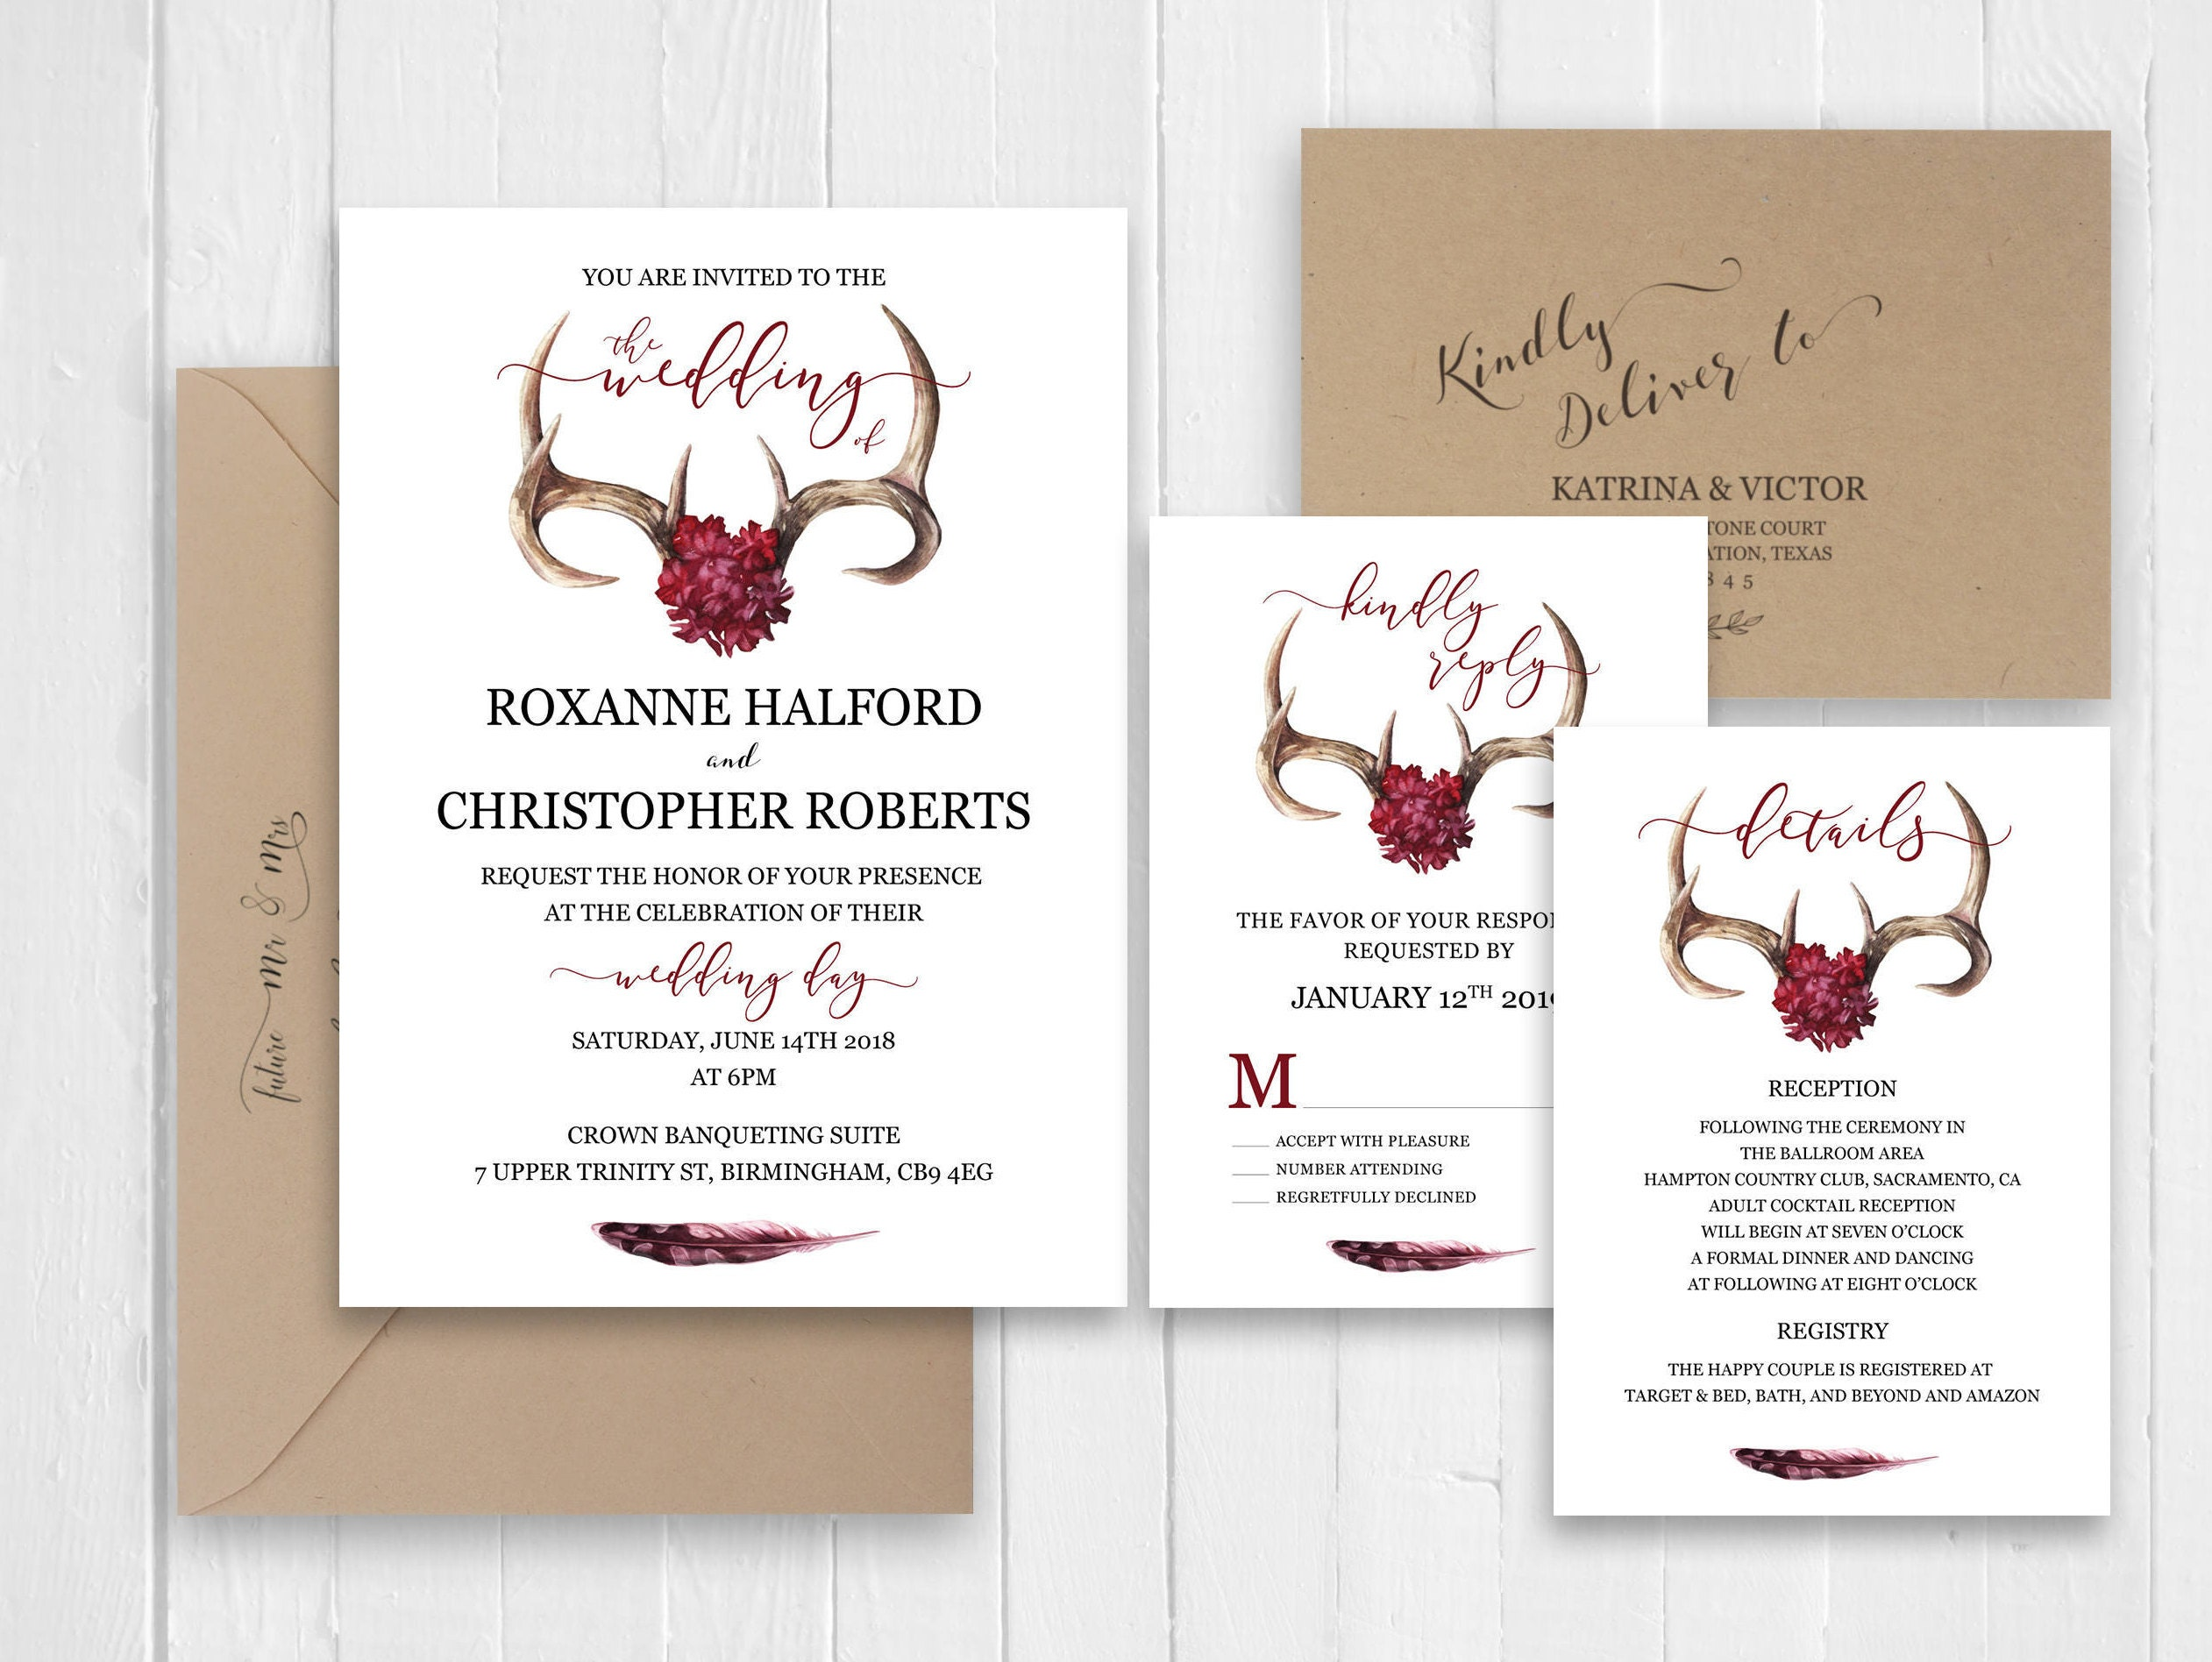 Burgundy Wedding Invitation Deer Antlers Invitations RSVP Details